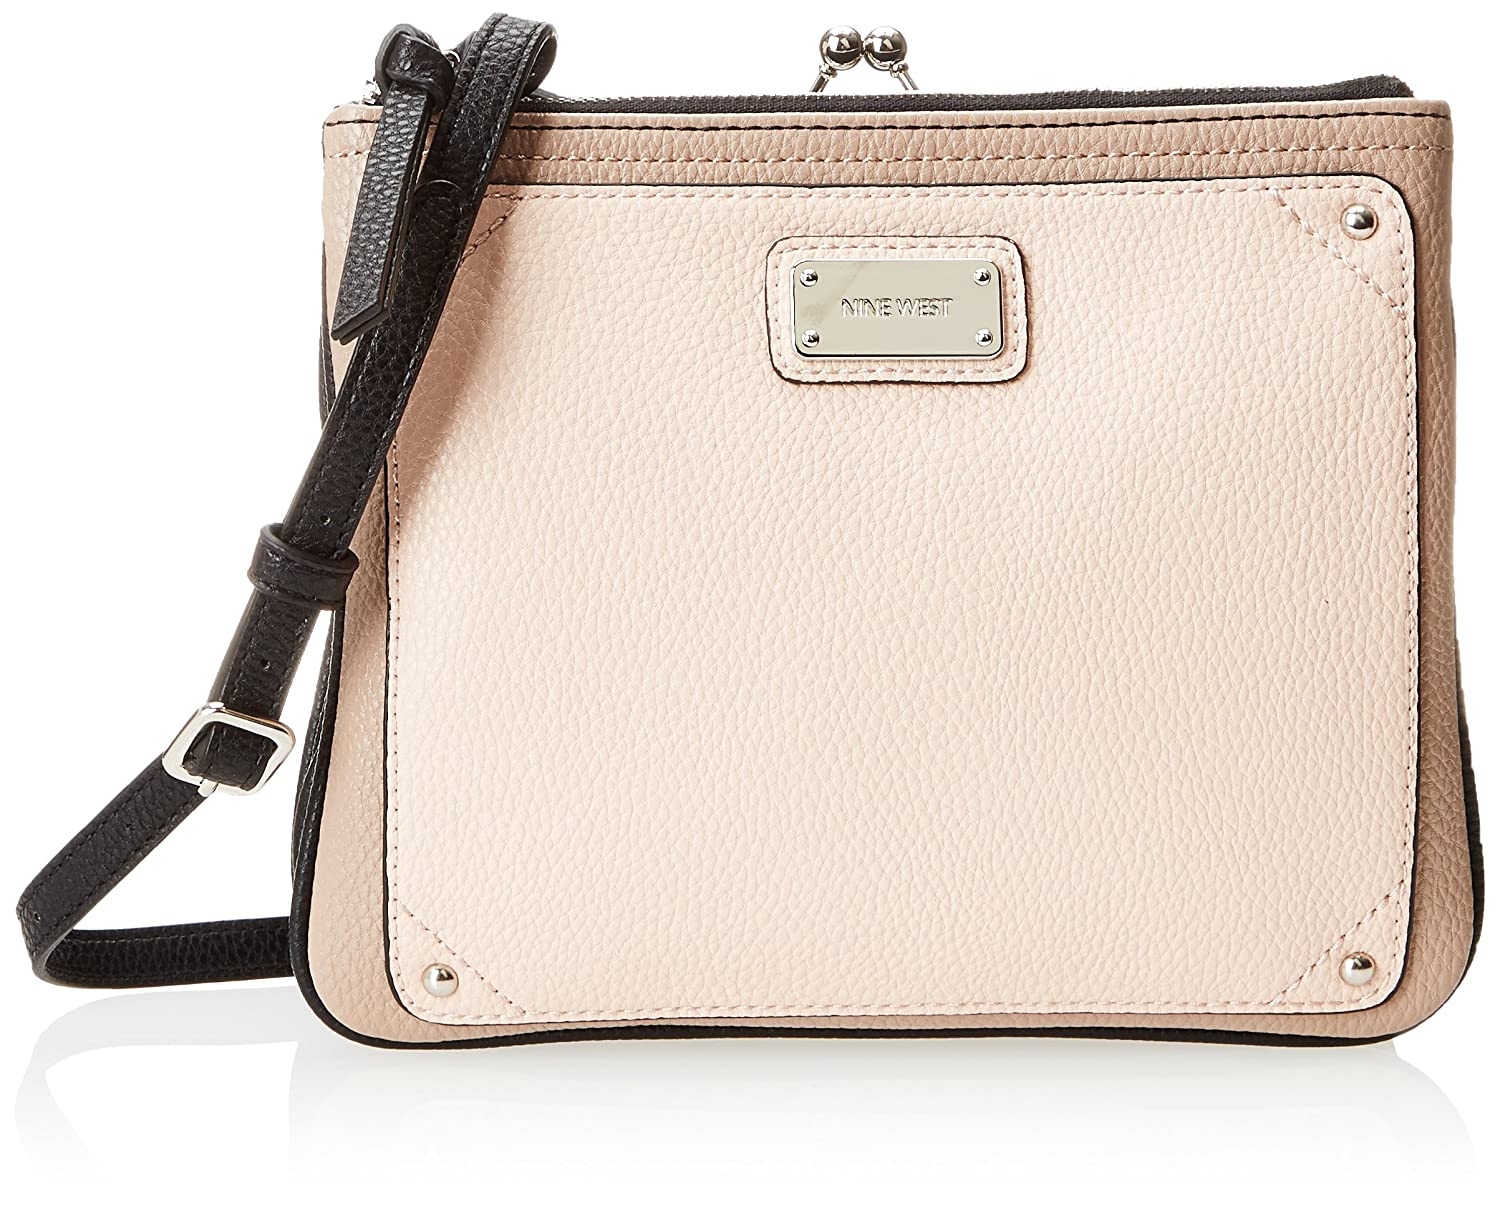 Nine West Double Vision B MD Cross Body Bag,Black/Ivory Multi,One Size